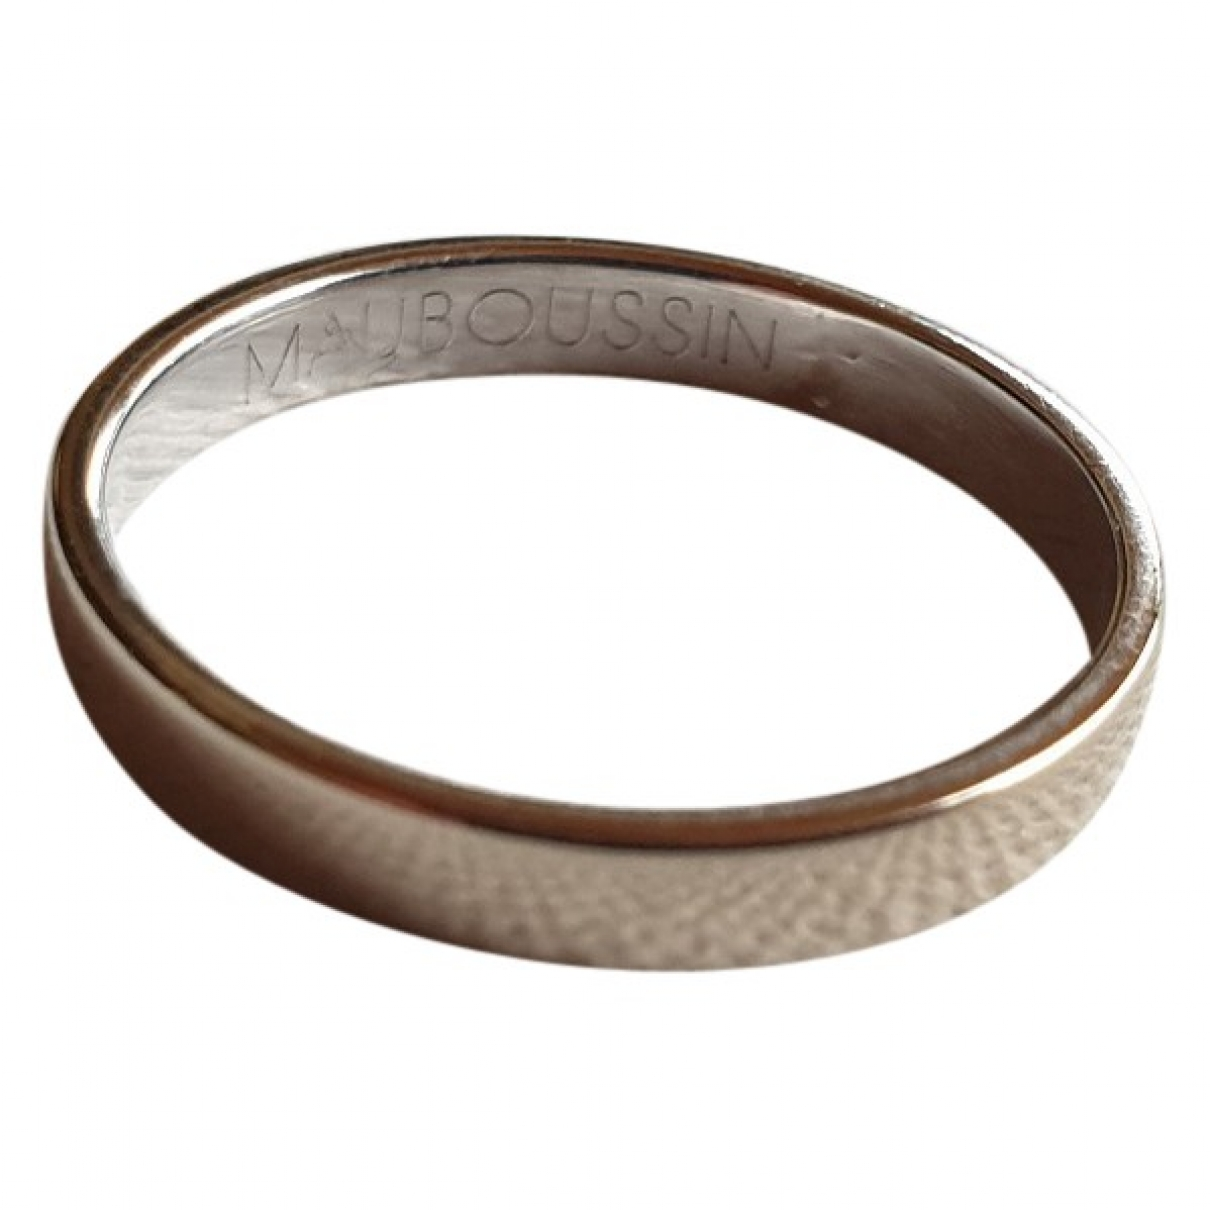 Mauboussin \N Ring in  Silber Weissgold